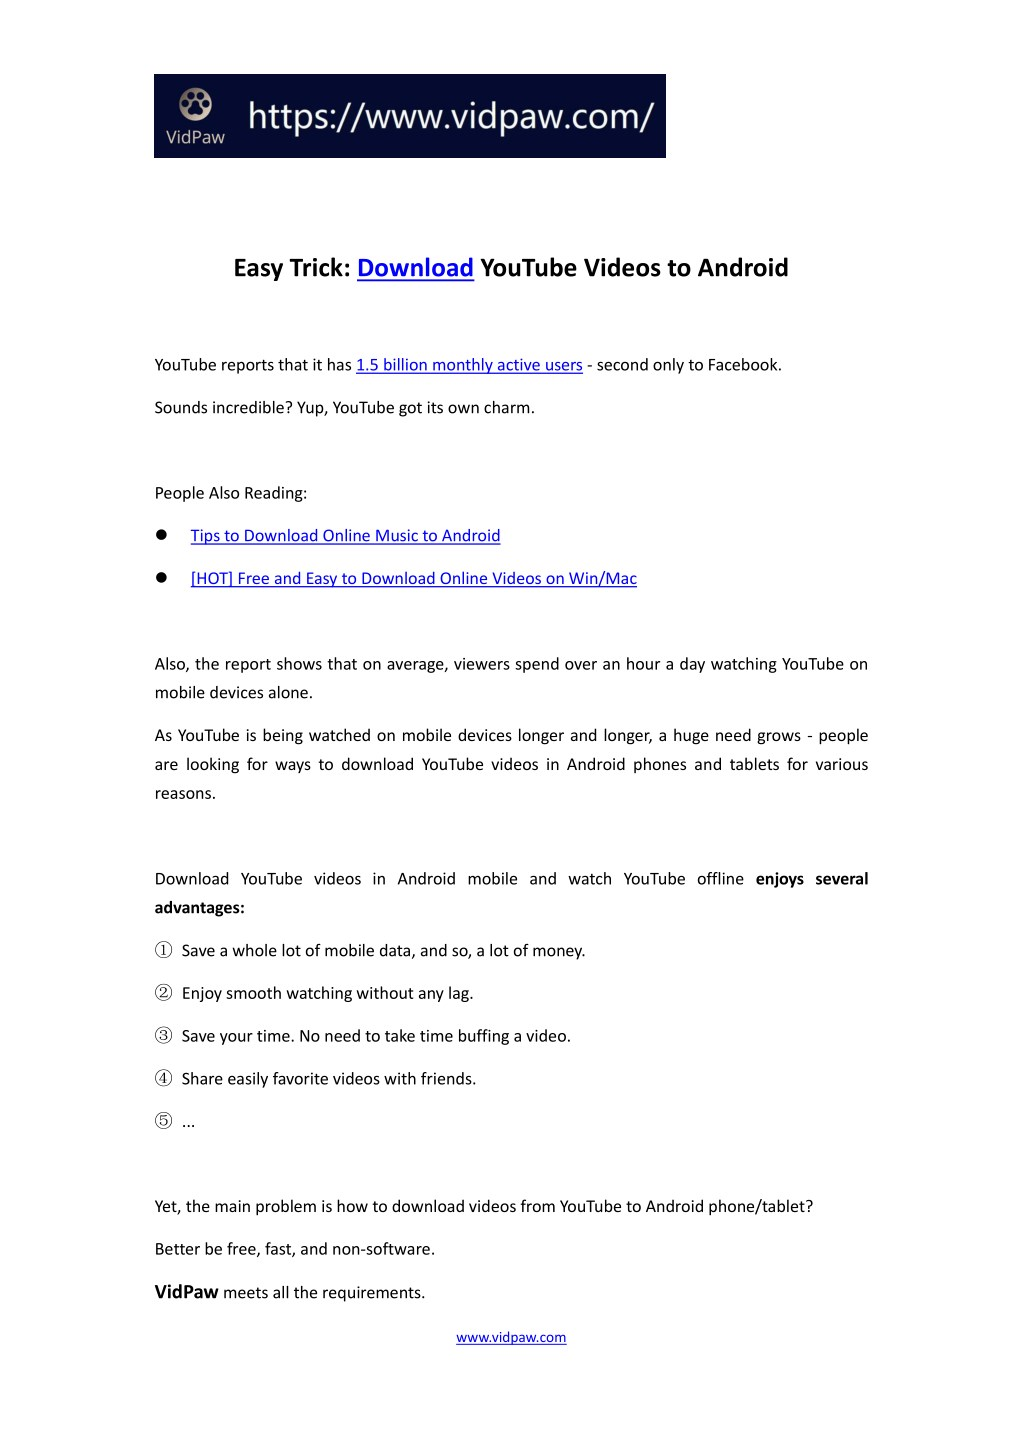 Hot videos free download from youtube – support and downloads – apps.